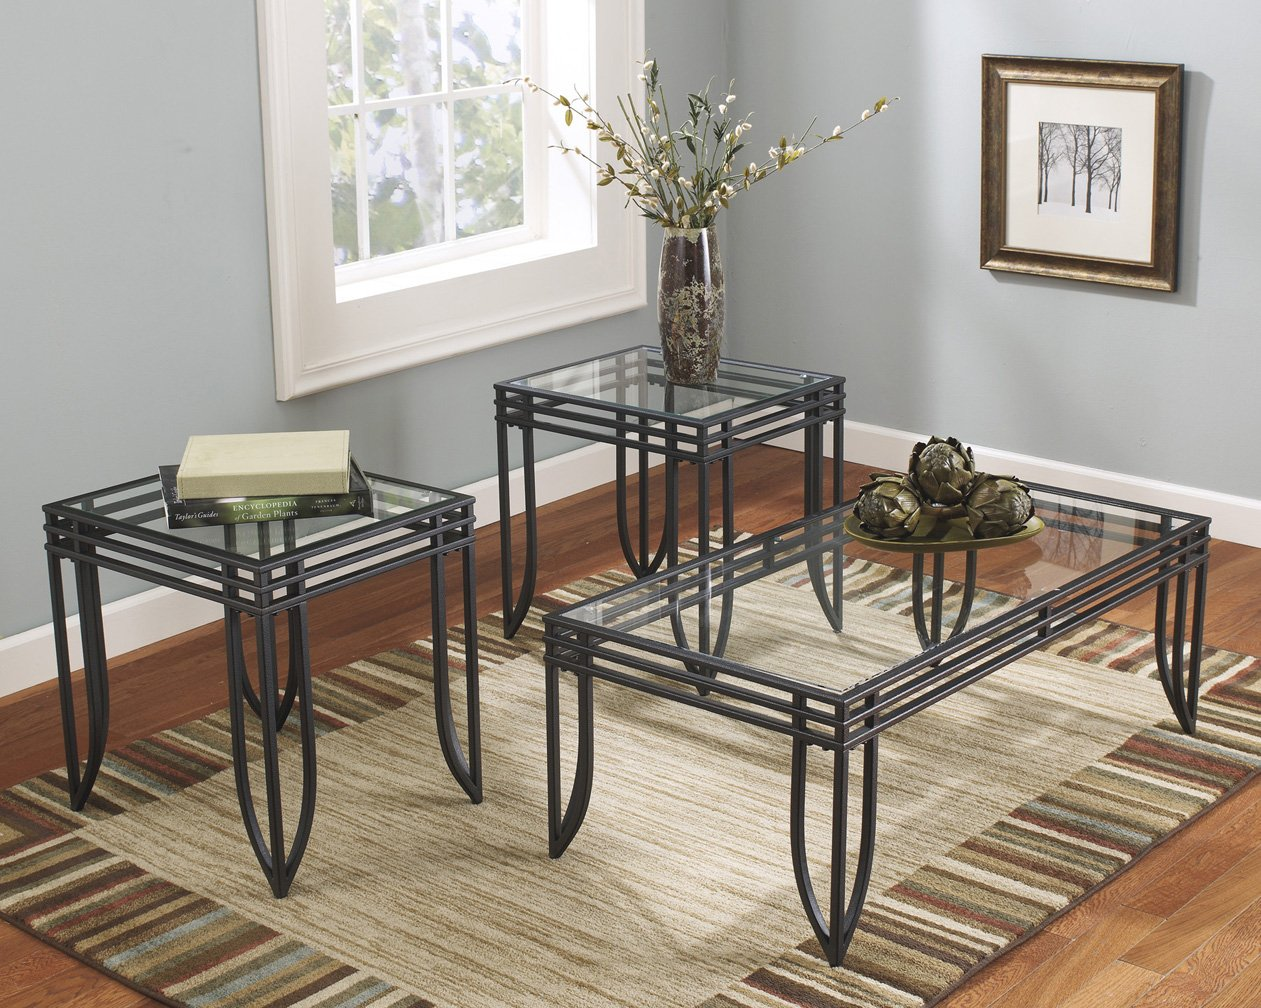 Good Amazon.com: Roundhill Furniture 3307 Matrix 3 In 1 Metal Frame Accent  Coffee And 2 End Table Set: Kitchen U0026 Dining